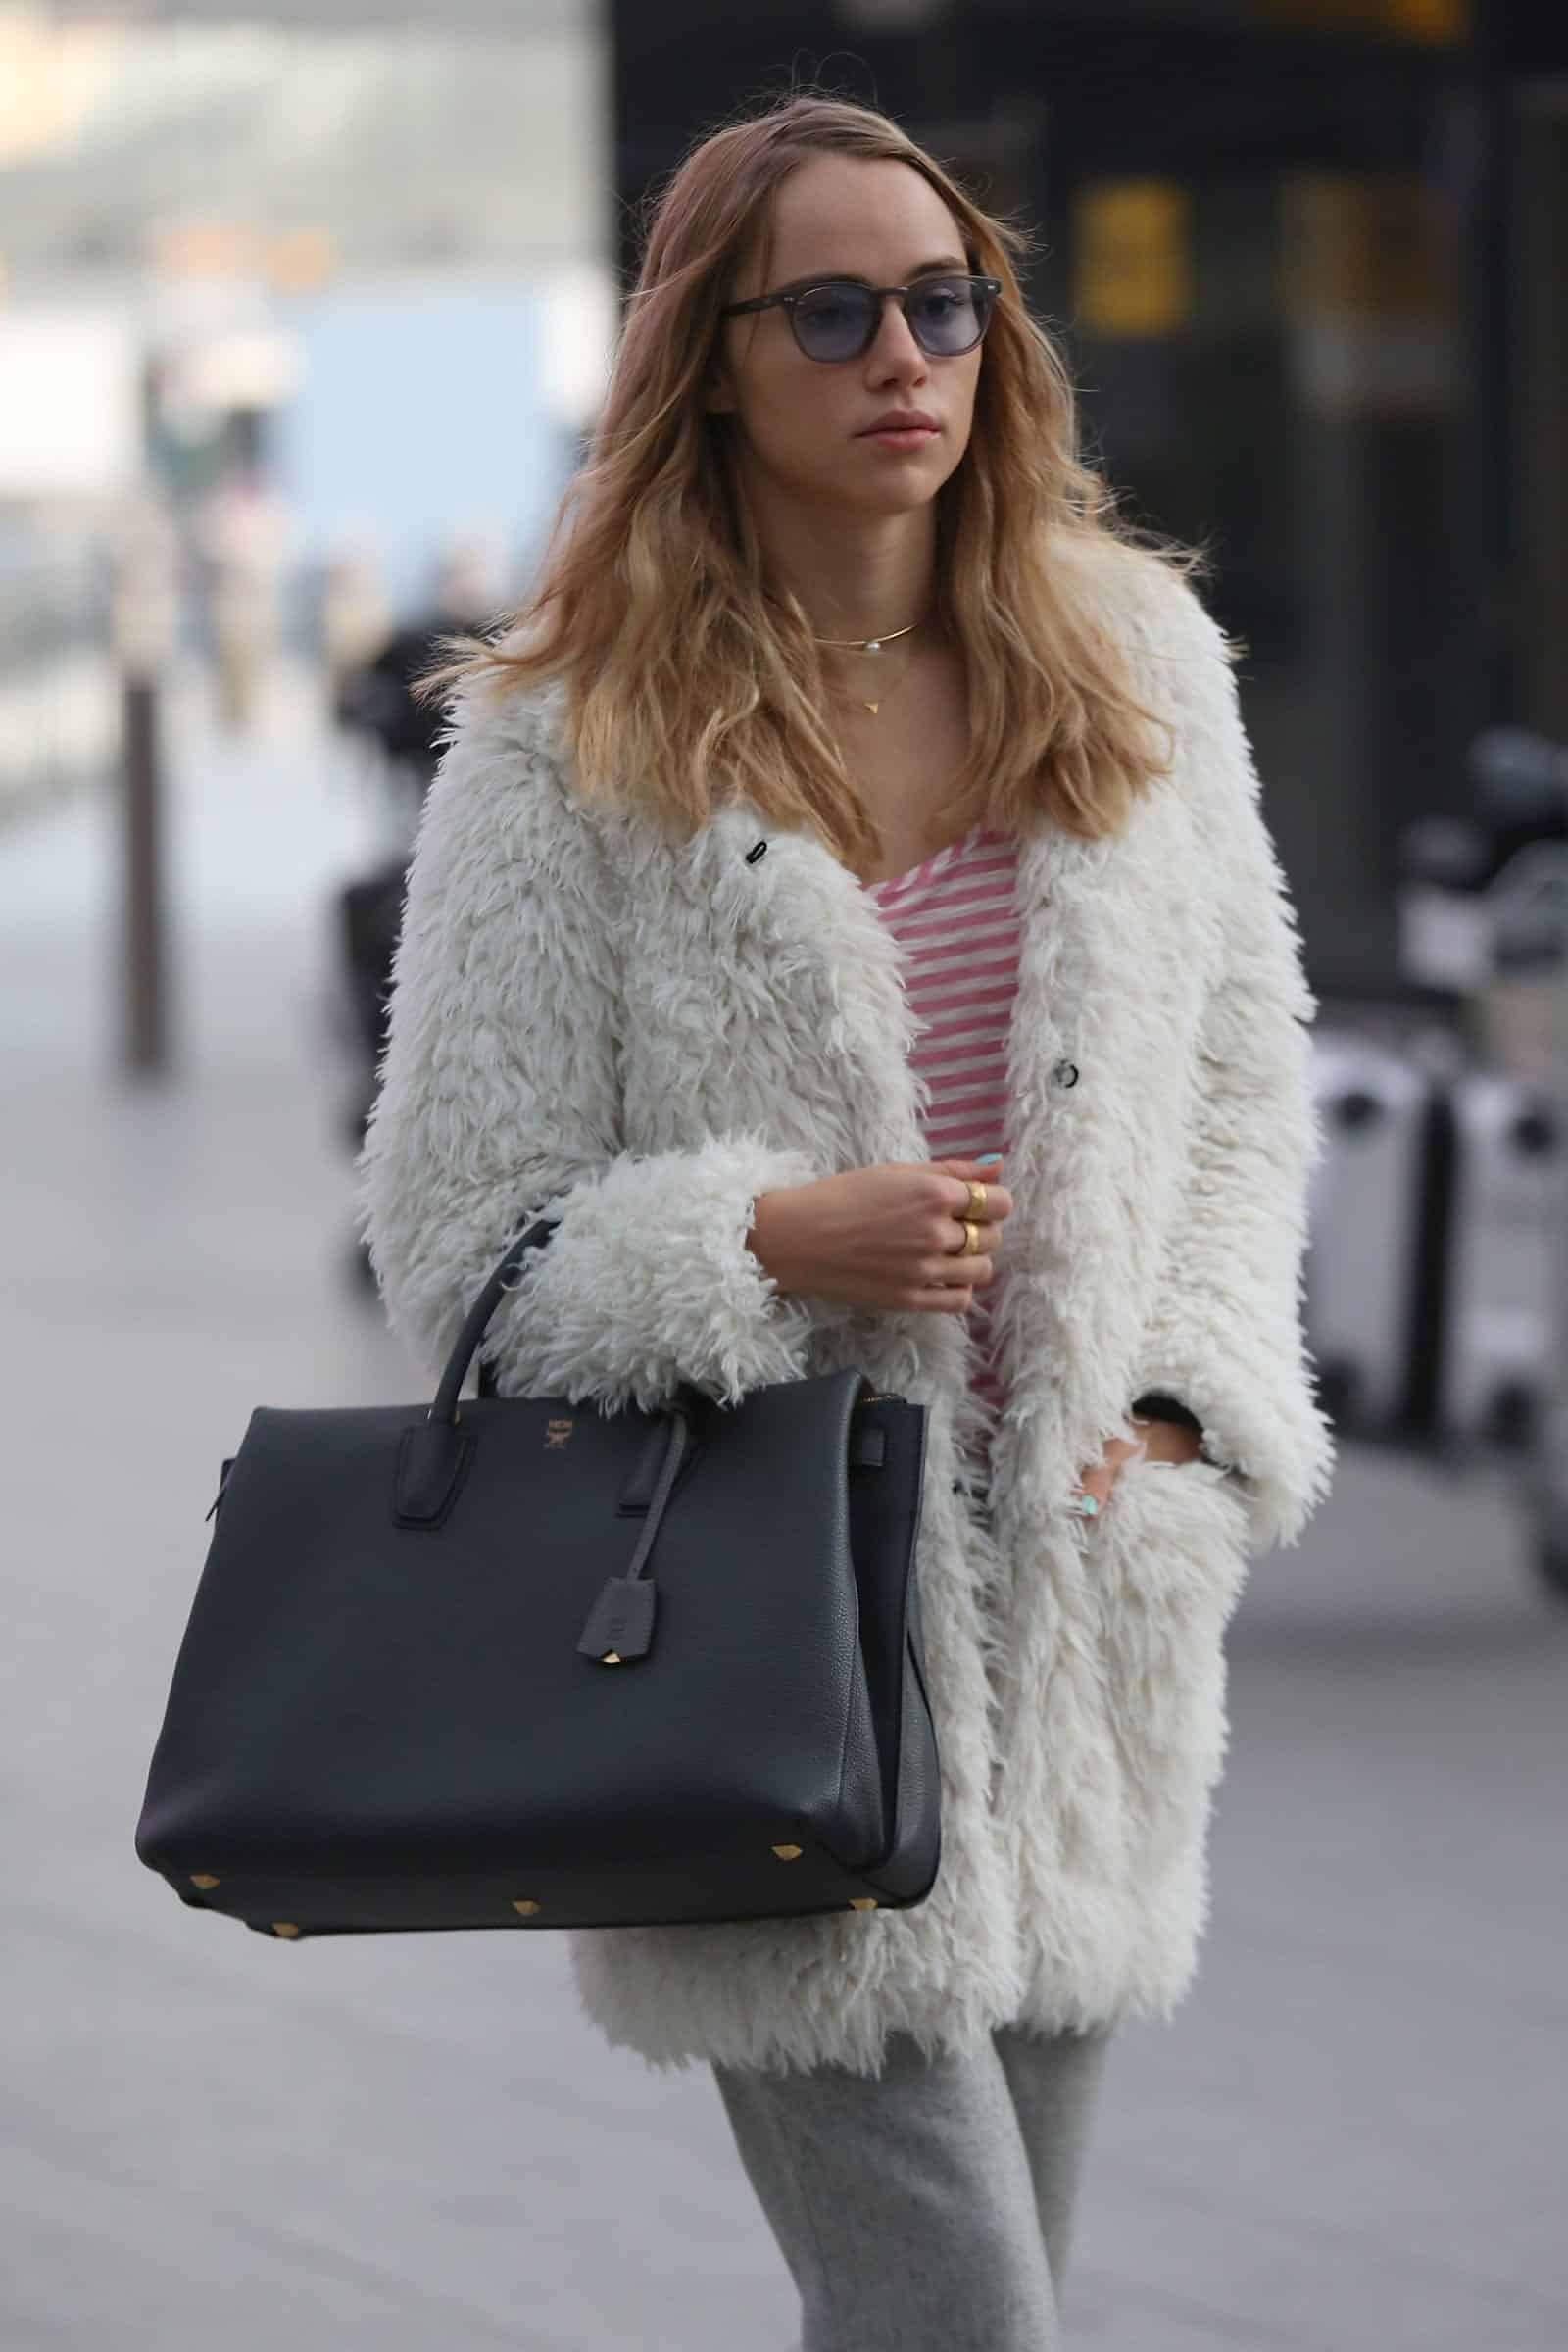 10 Must Have Winter Fashion Accessories for Women This Year